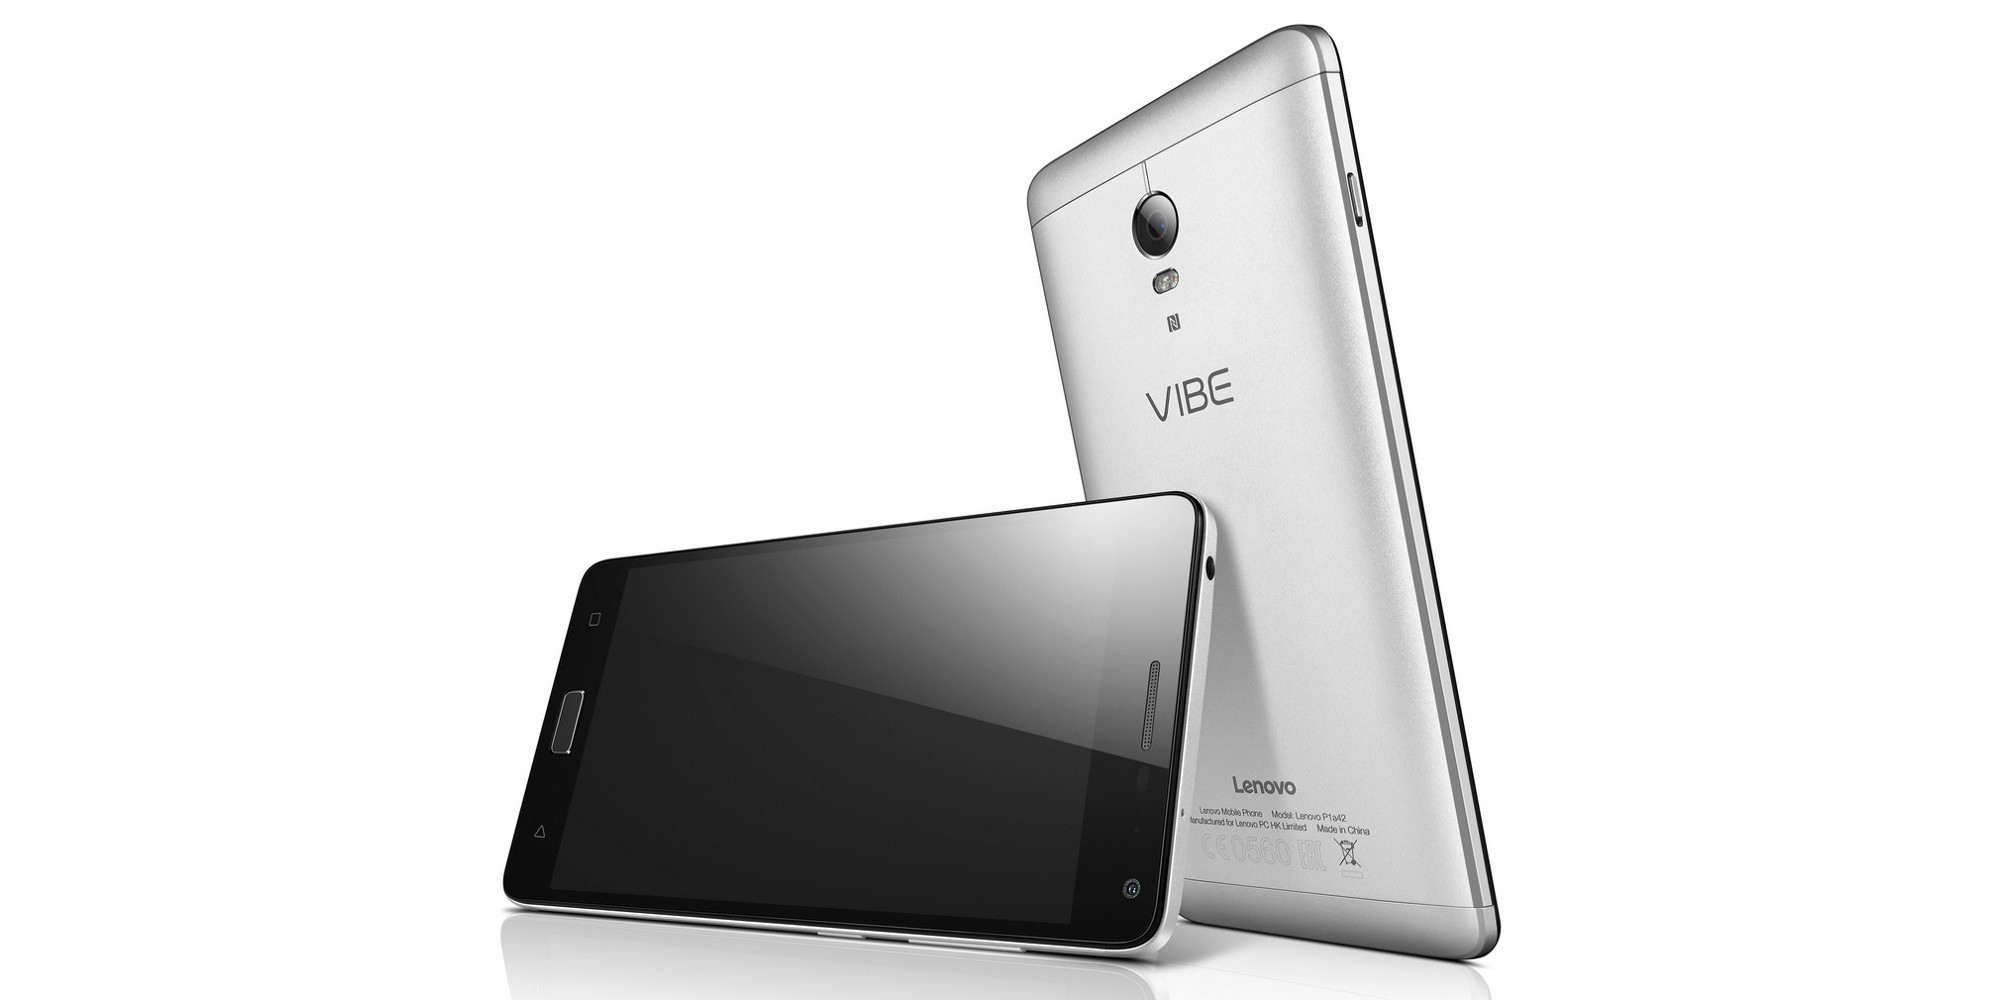 Ifa 2015 Lenovo Announces Vibe P1 And P1m Android Phones With S930 Quadcore